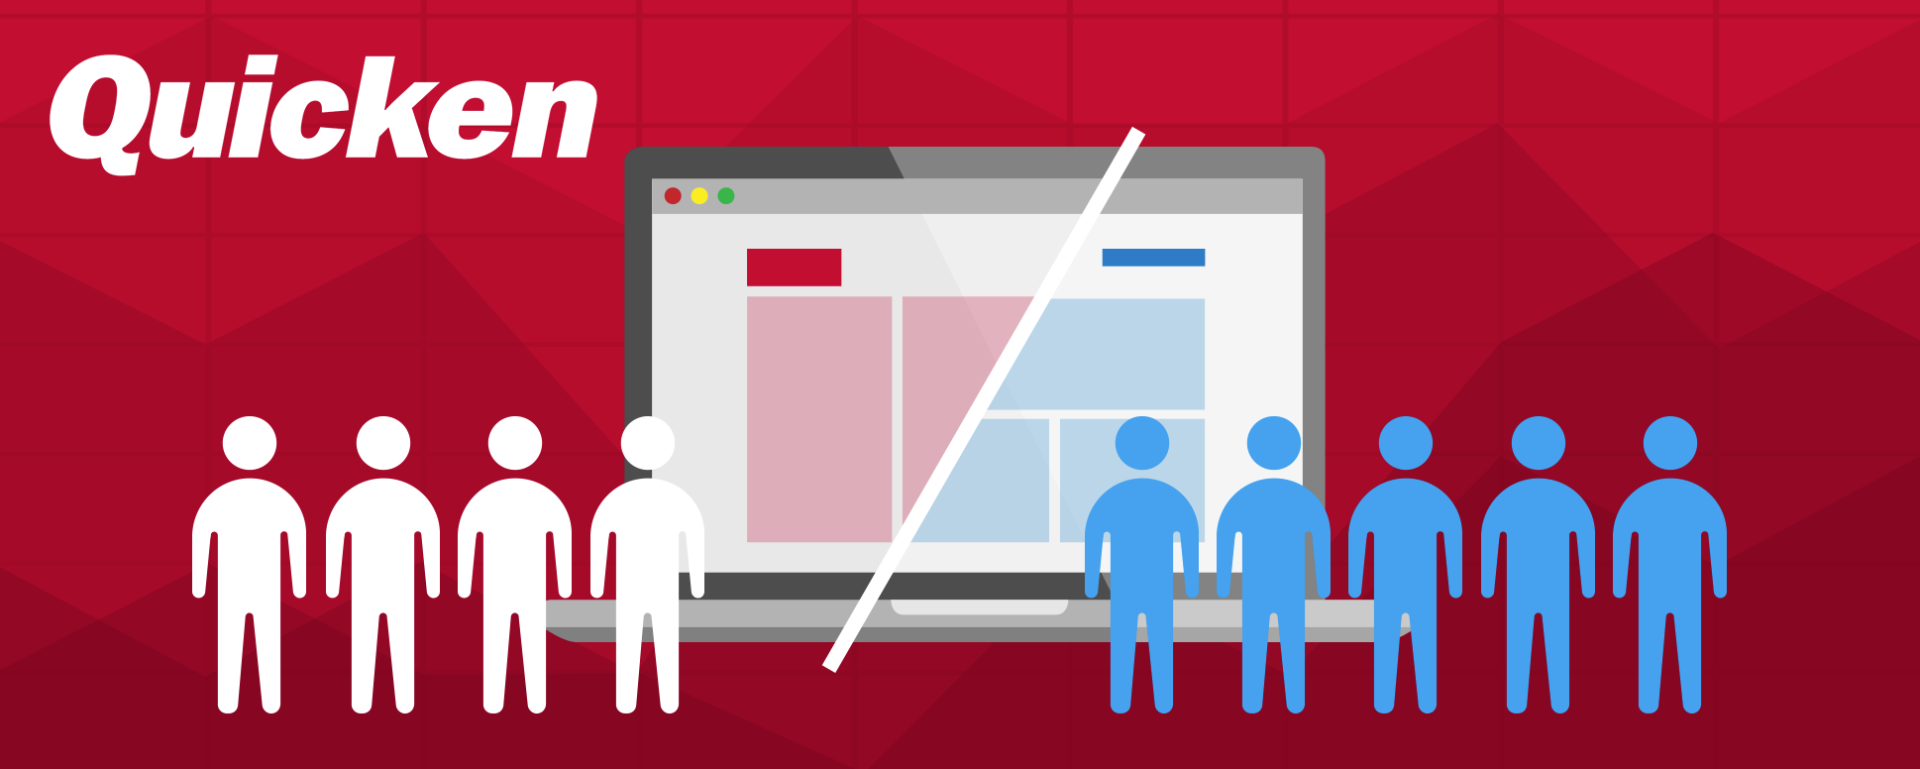 case study header image for quicken